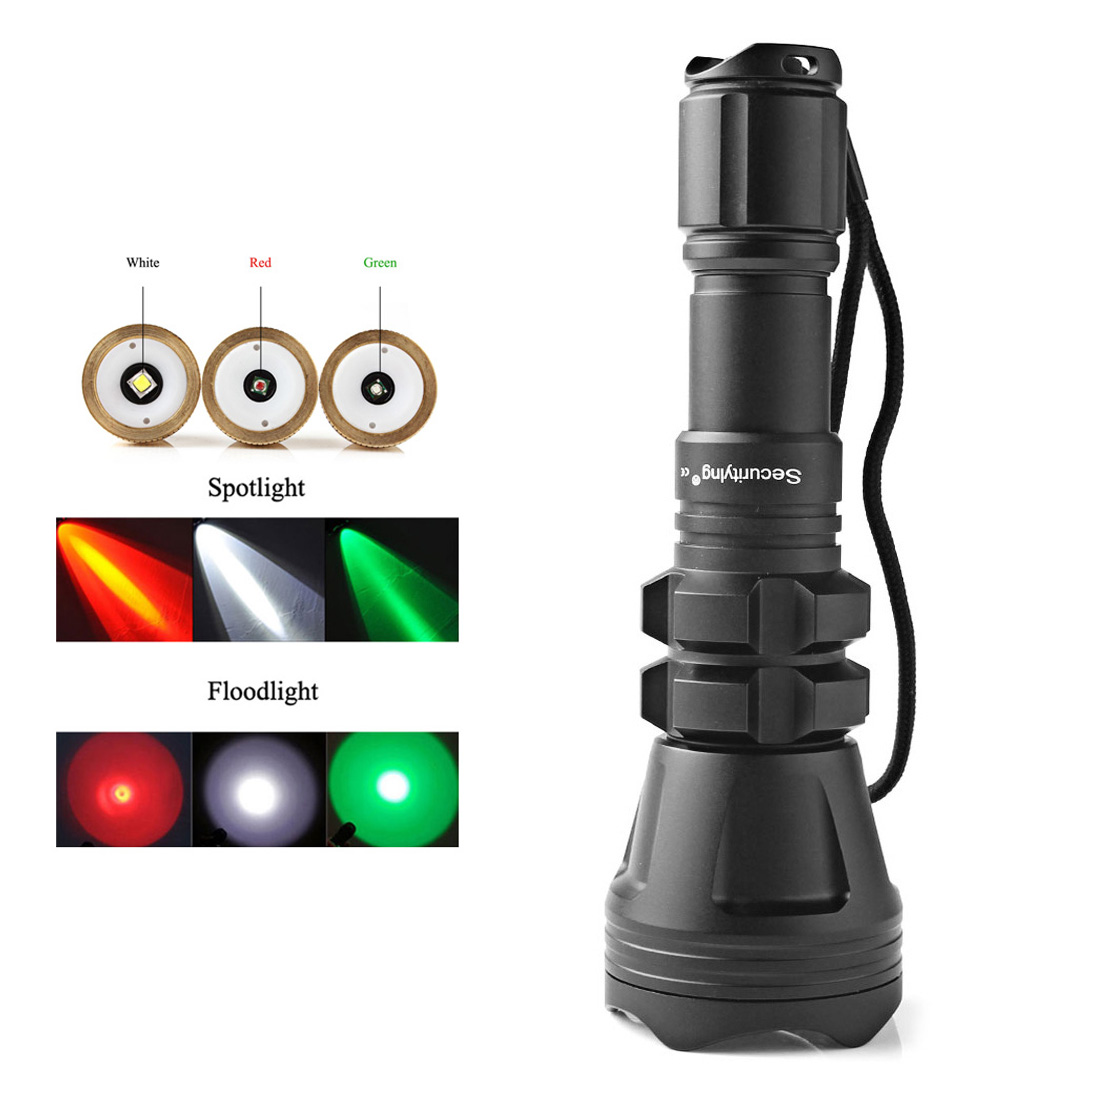 SecurityIng Hunting Flashlight XM-L2 U4 Red / Green / White Led 900LM 5 Modes Zoomable Waterproof Torch + Remote Pressure uniquefire 1405 xpe green red white light led flashlight portable zoomable torch remote pressure to remote control lamp